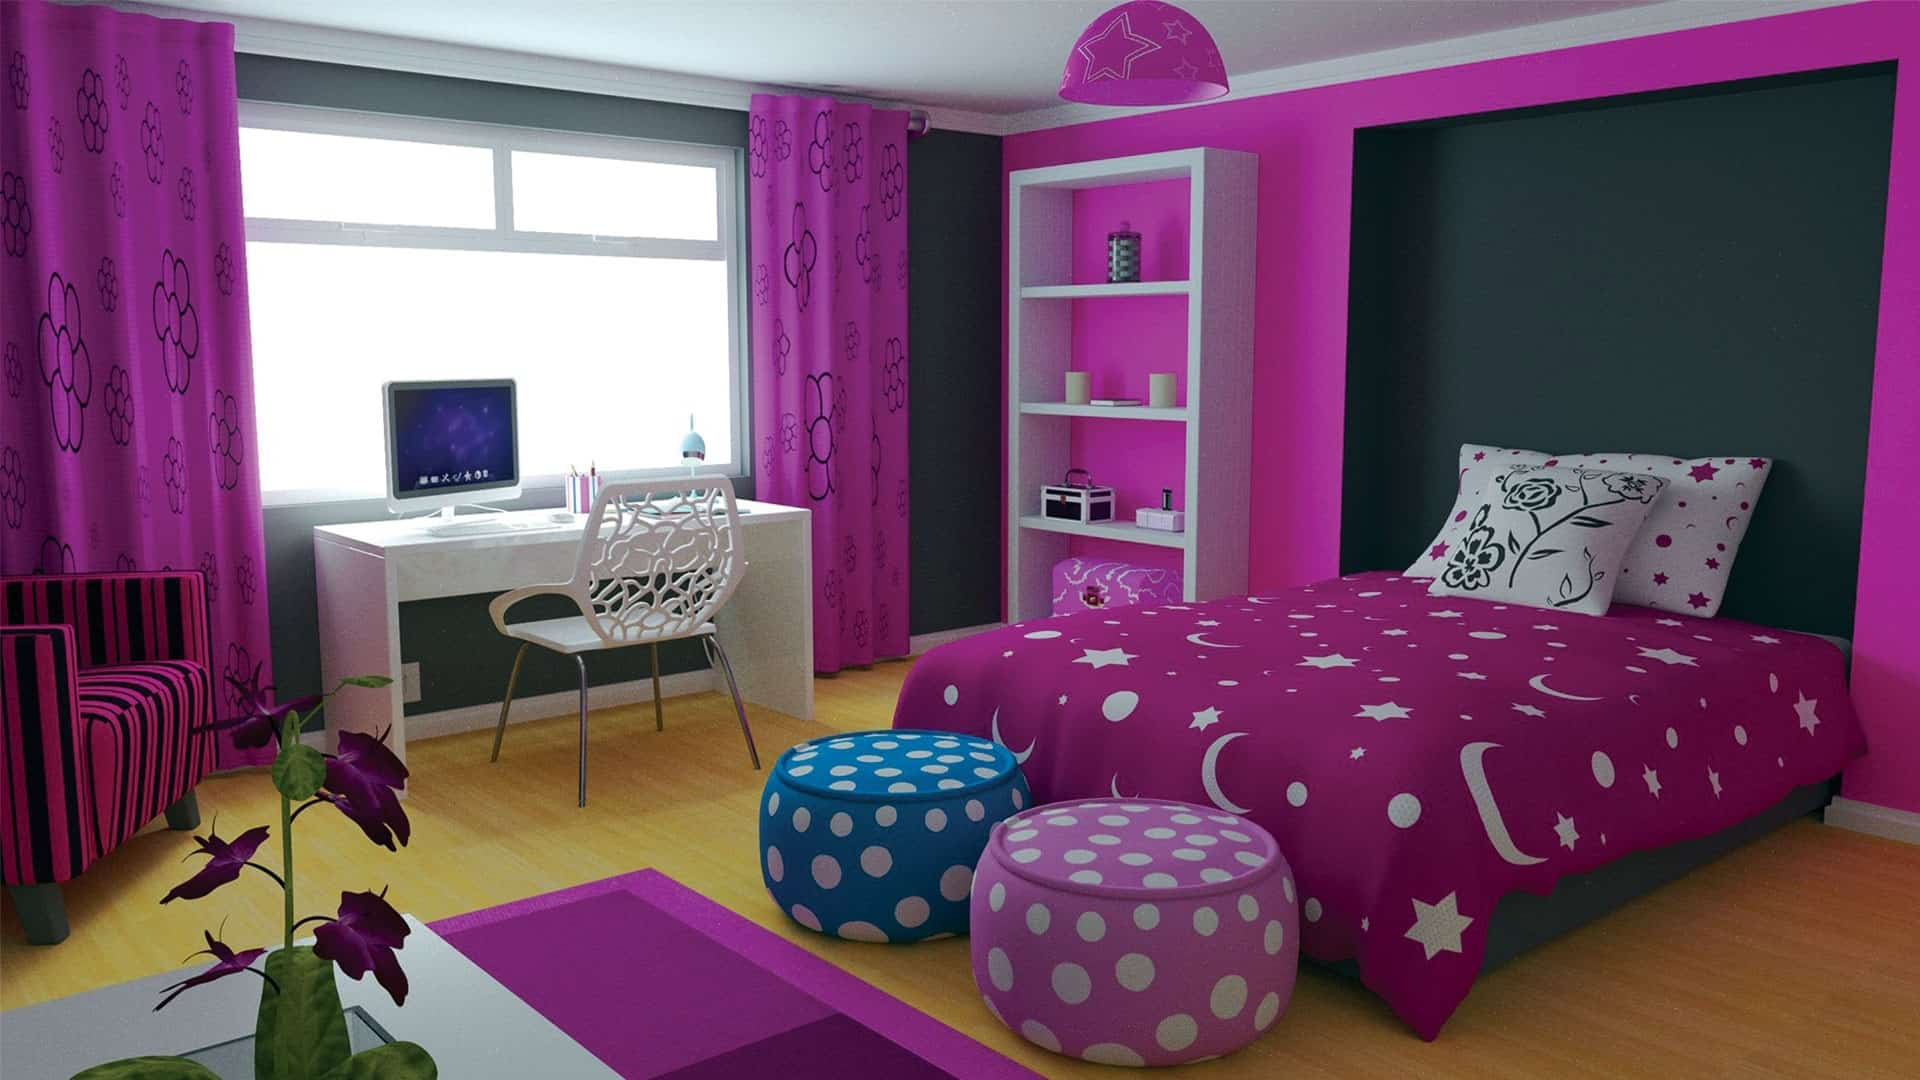 Home decor trends 2017 purple teen room - How to decorate a girl room ...